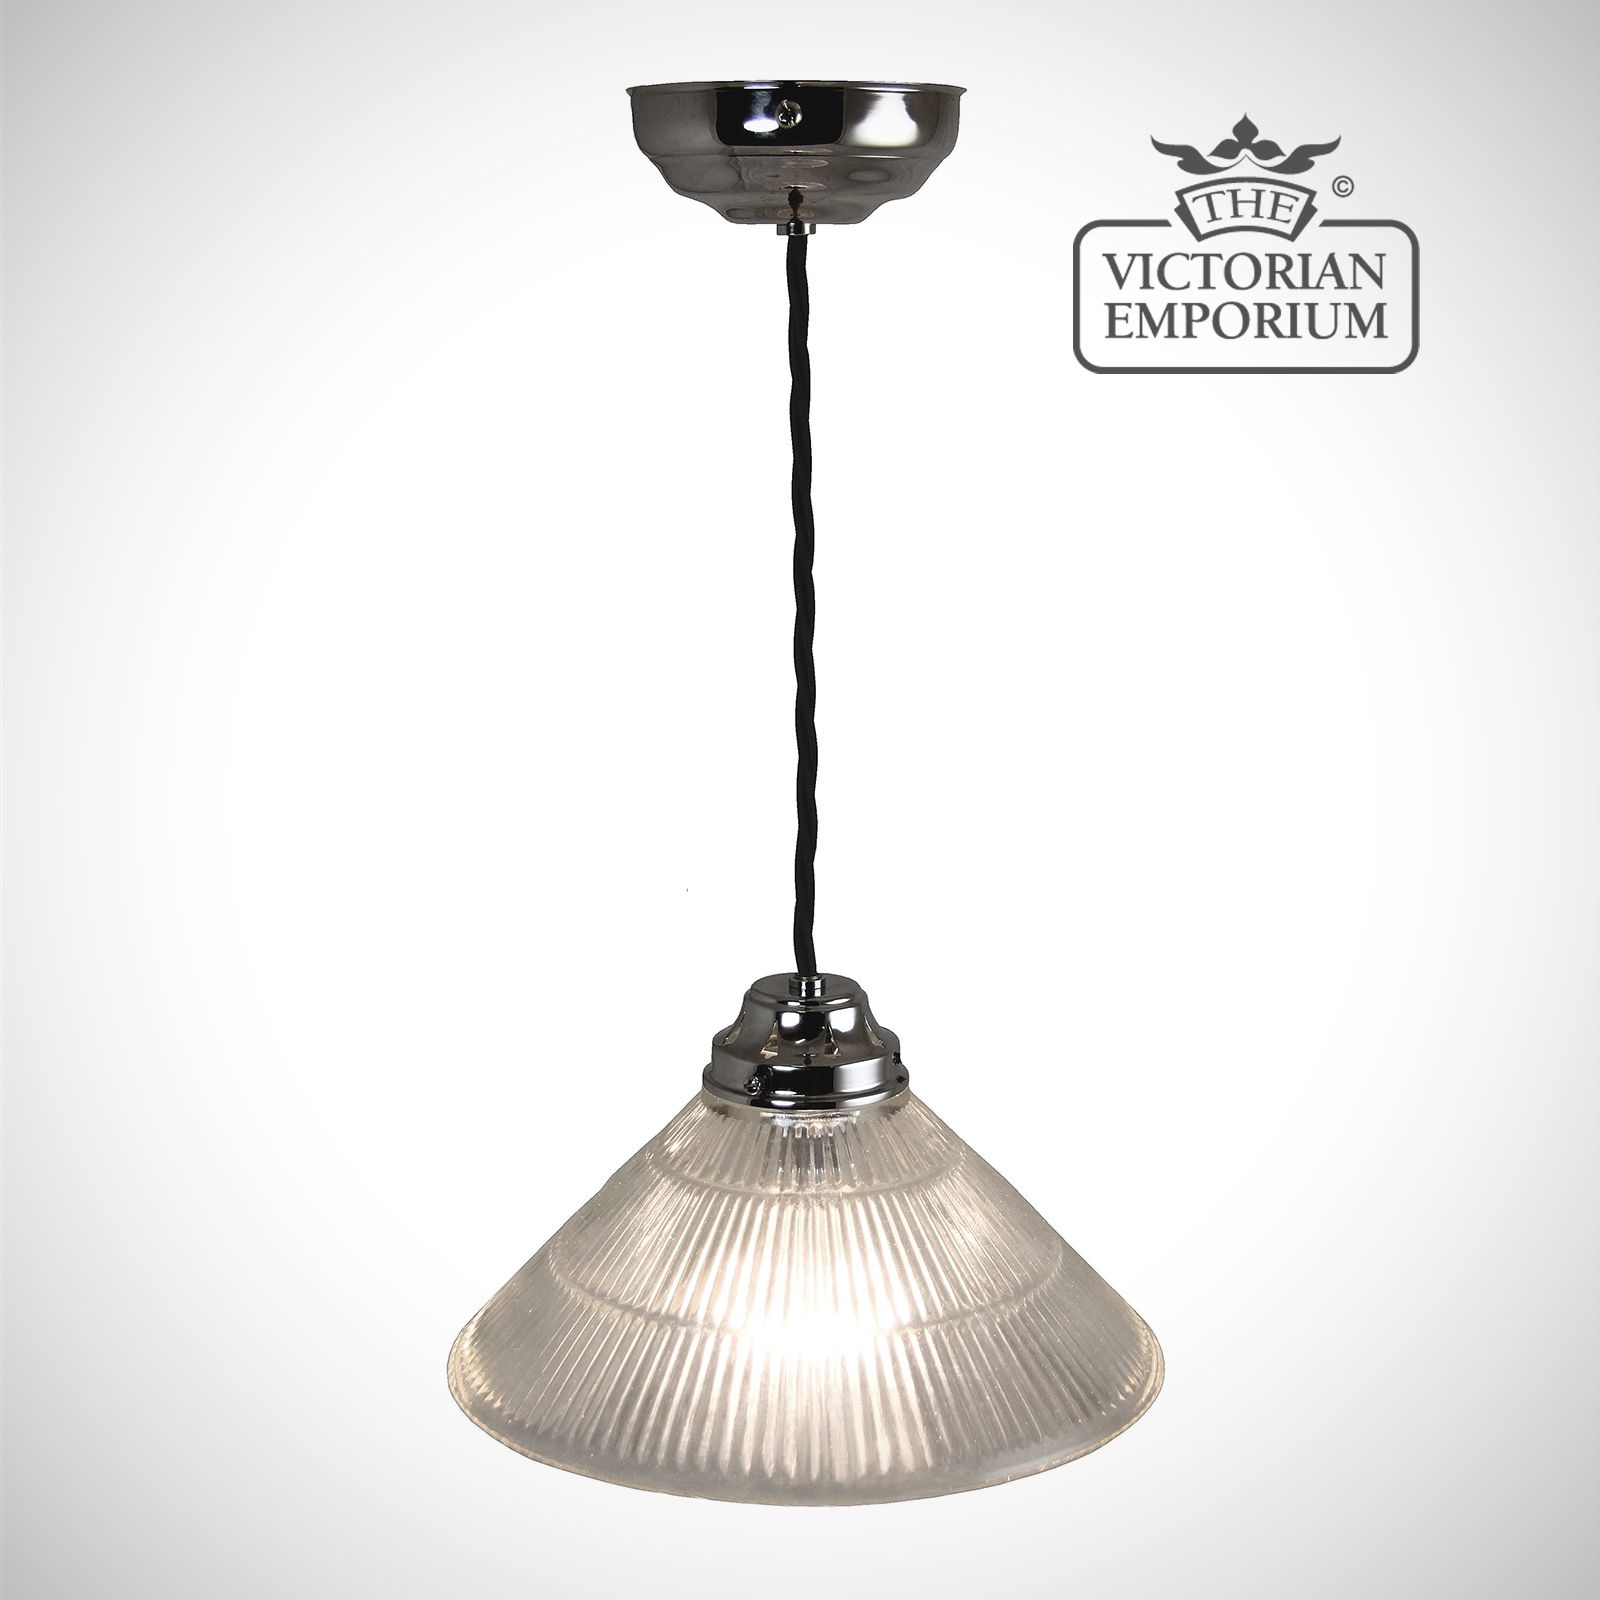 Cone Shaped Pendant Light Reeded Glass Cone Shaped Ceiling Light In Chrome